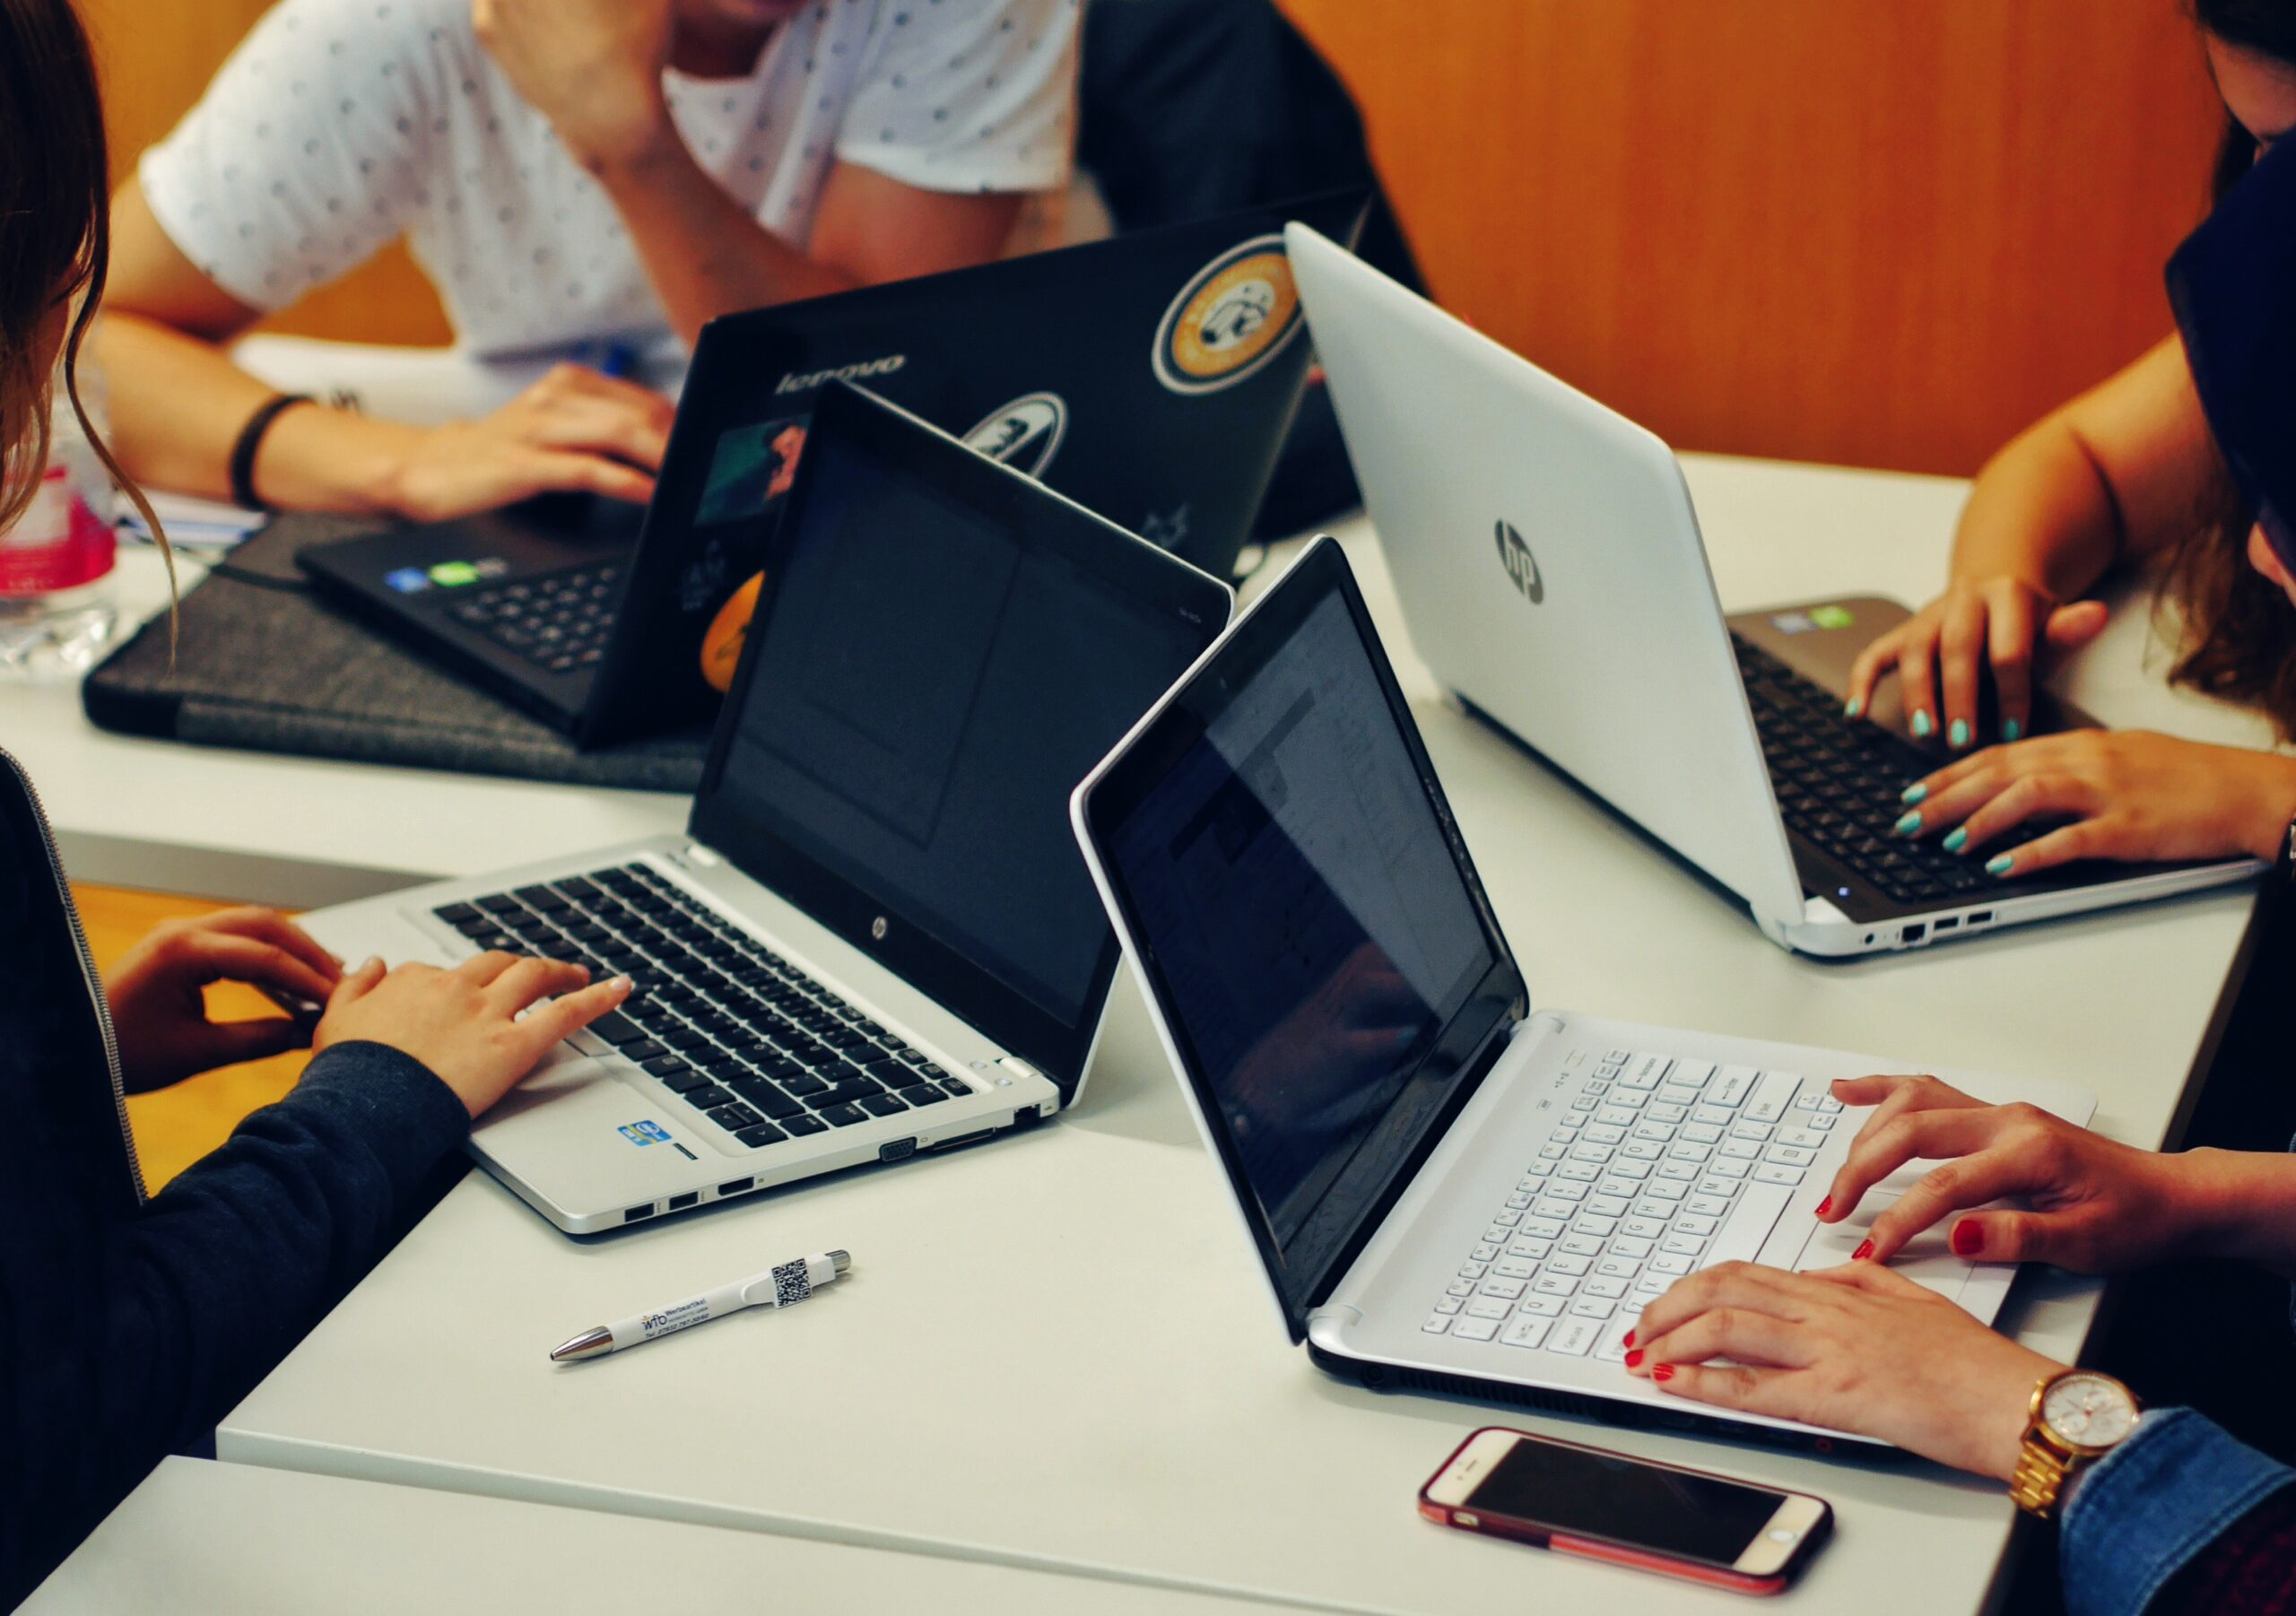 How to Organize a Successful Campus Hackathon?